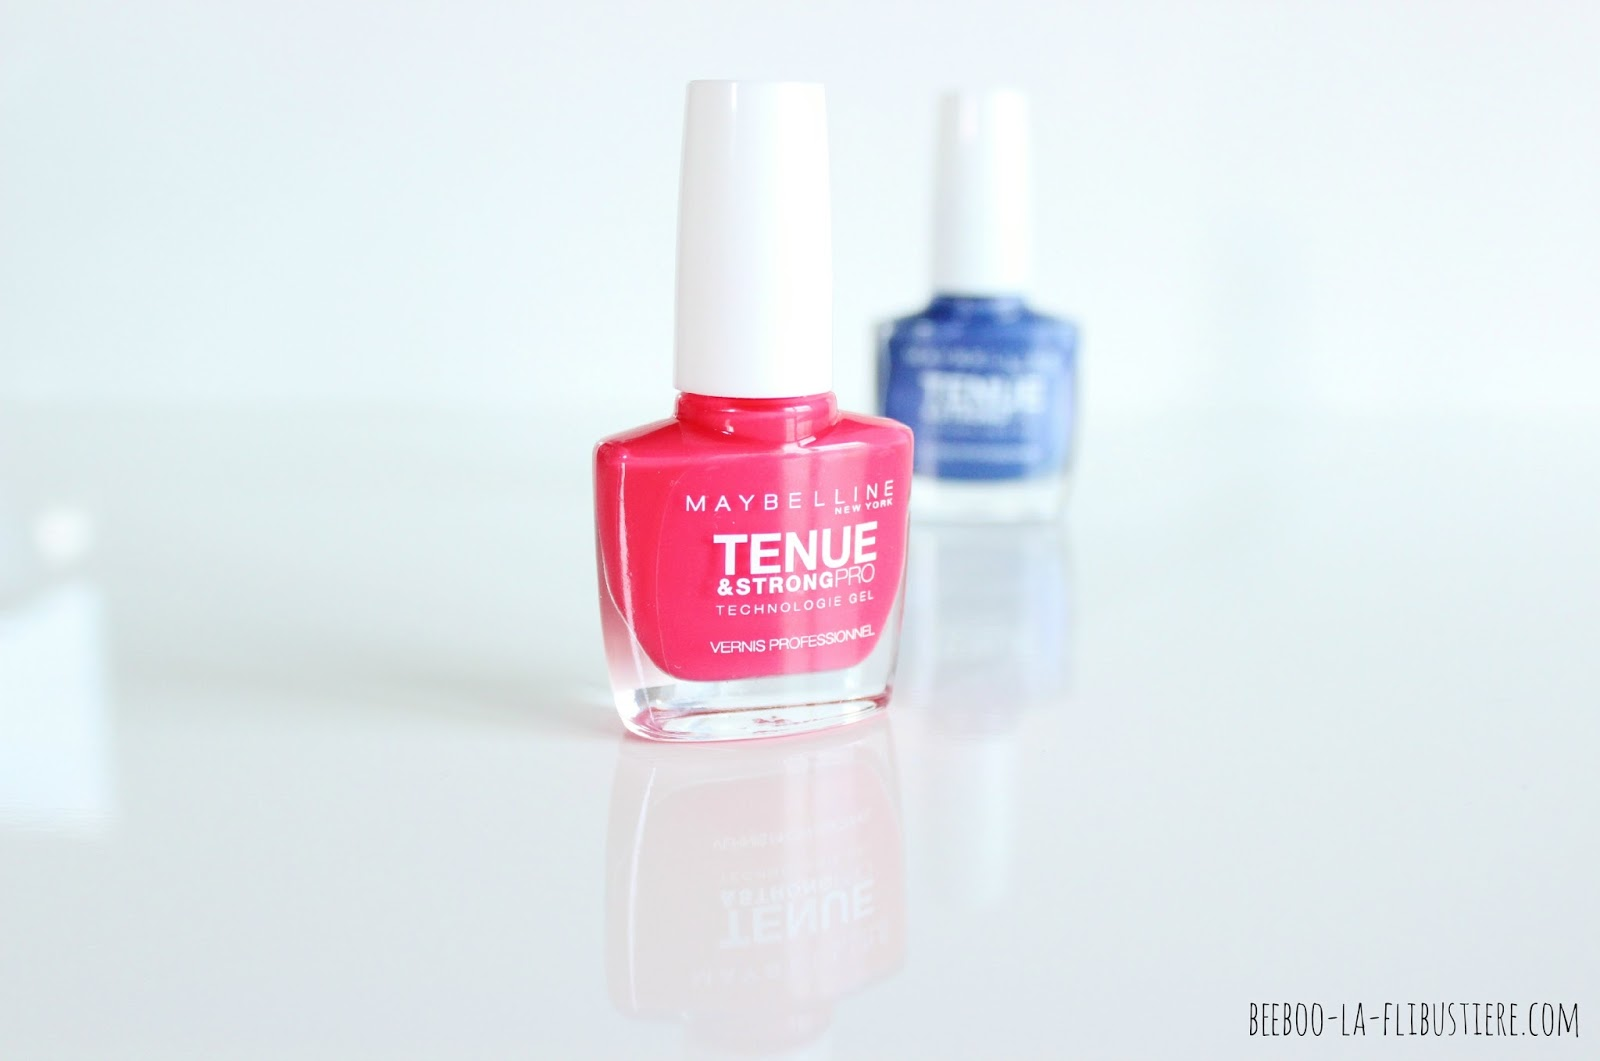 tenue & strong pro maybelline 490 Rose Salsa